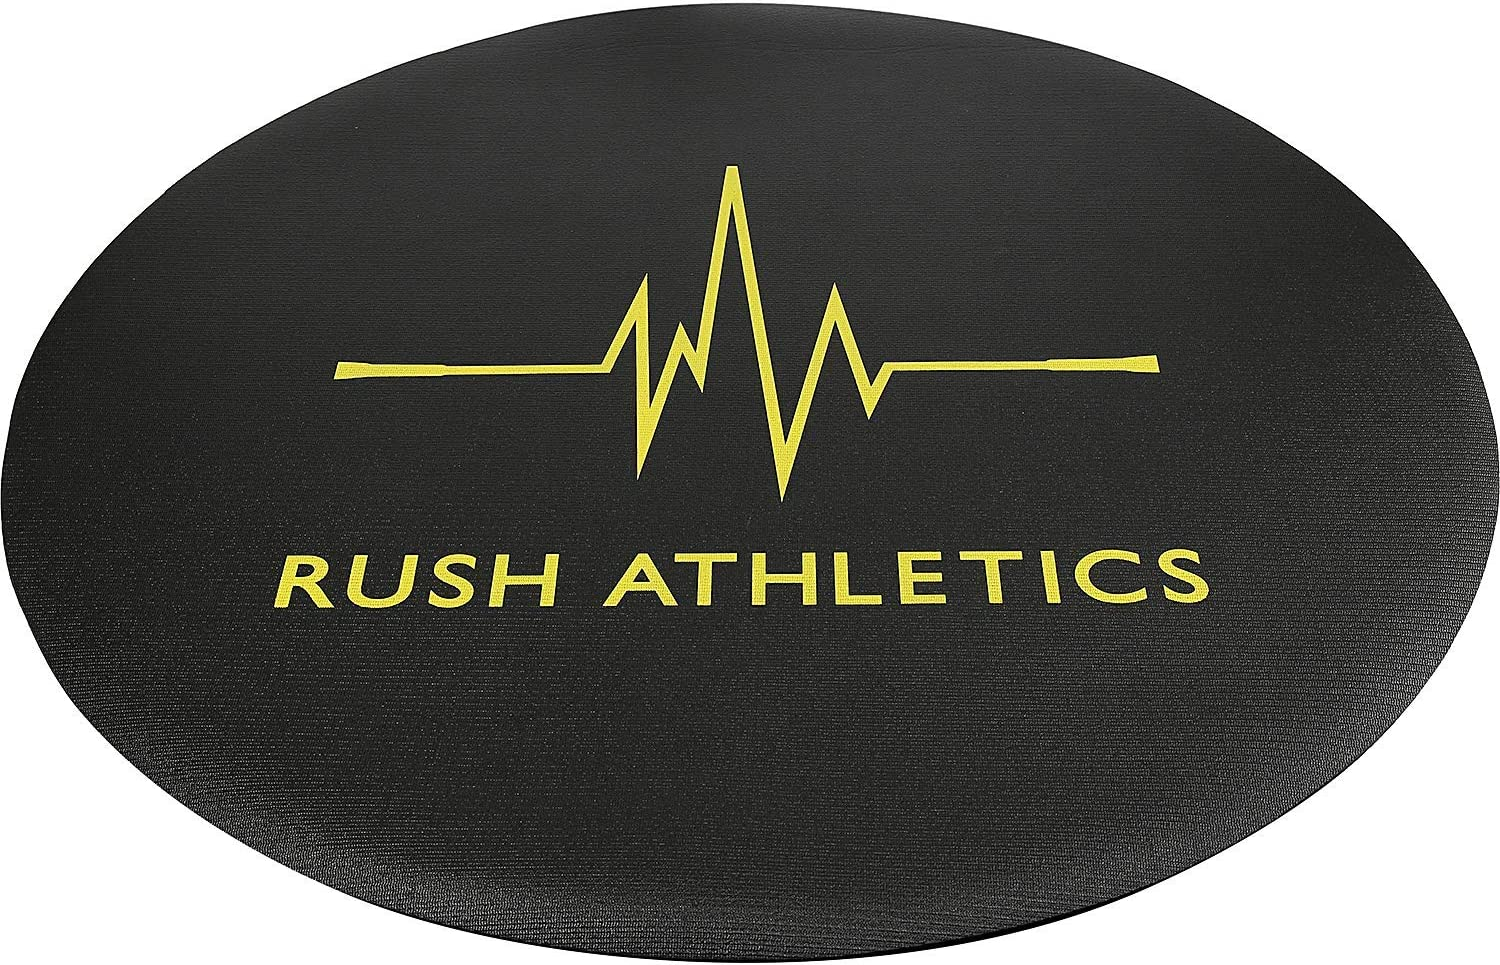 RUSH ATHLETICS Round Jump Rope Our shop most popular Fitness Di v2- 1.4m Dedication MAT Non-Slip